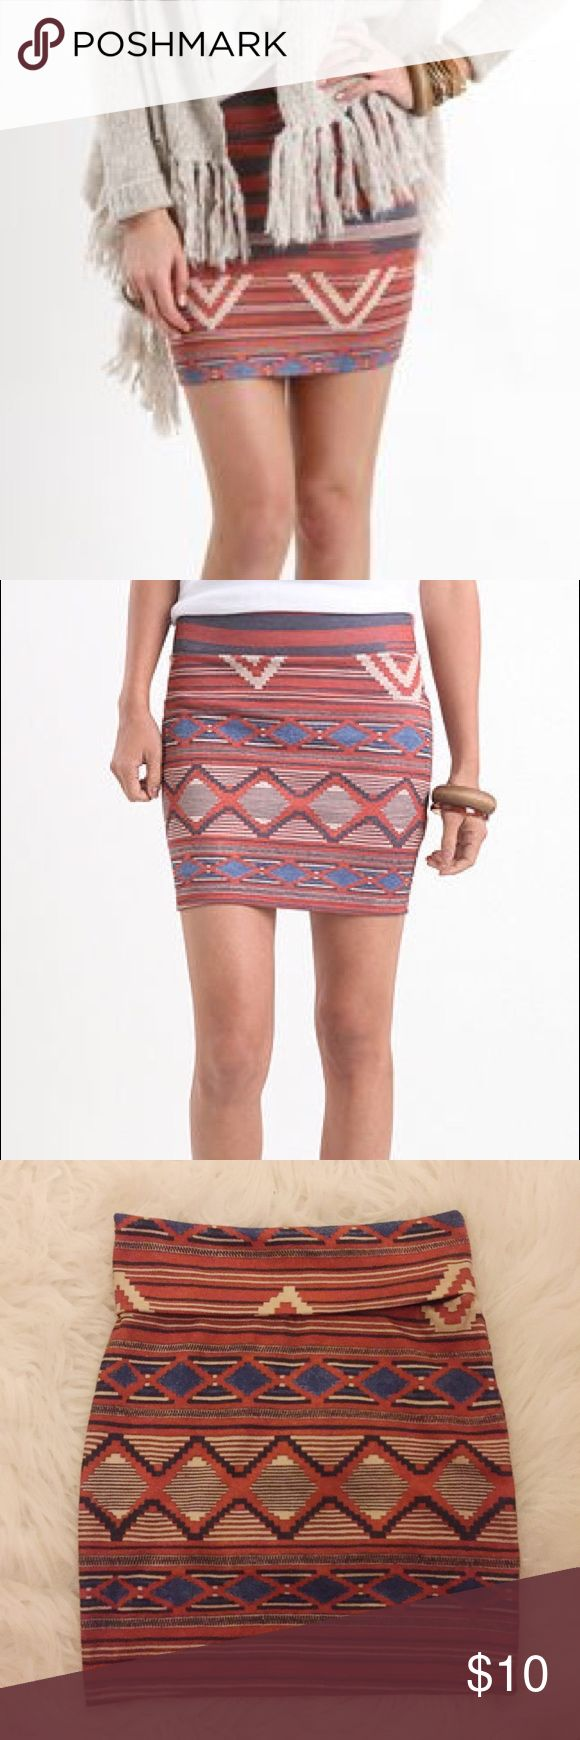 Printed Bodycon Skirt New, never worn, NWNT - known as 'Nollie Navajo Body Con Skirt' from PacSun PacSun Skirts Mini